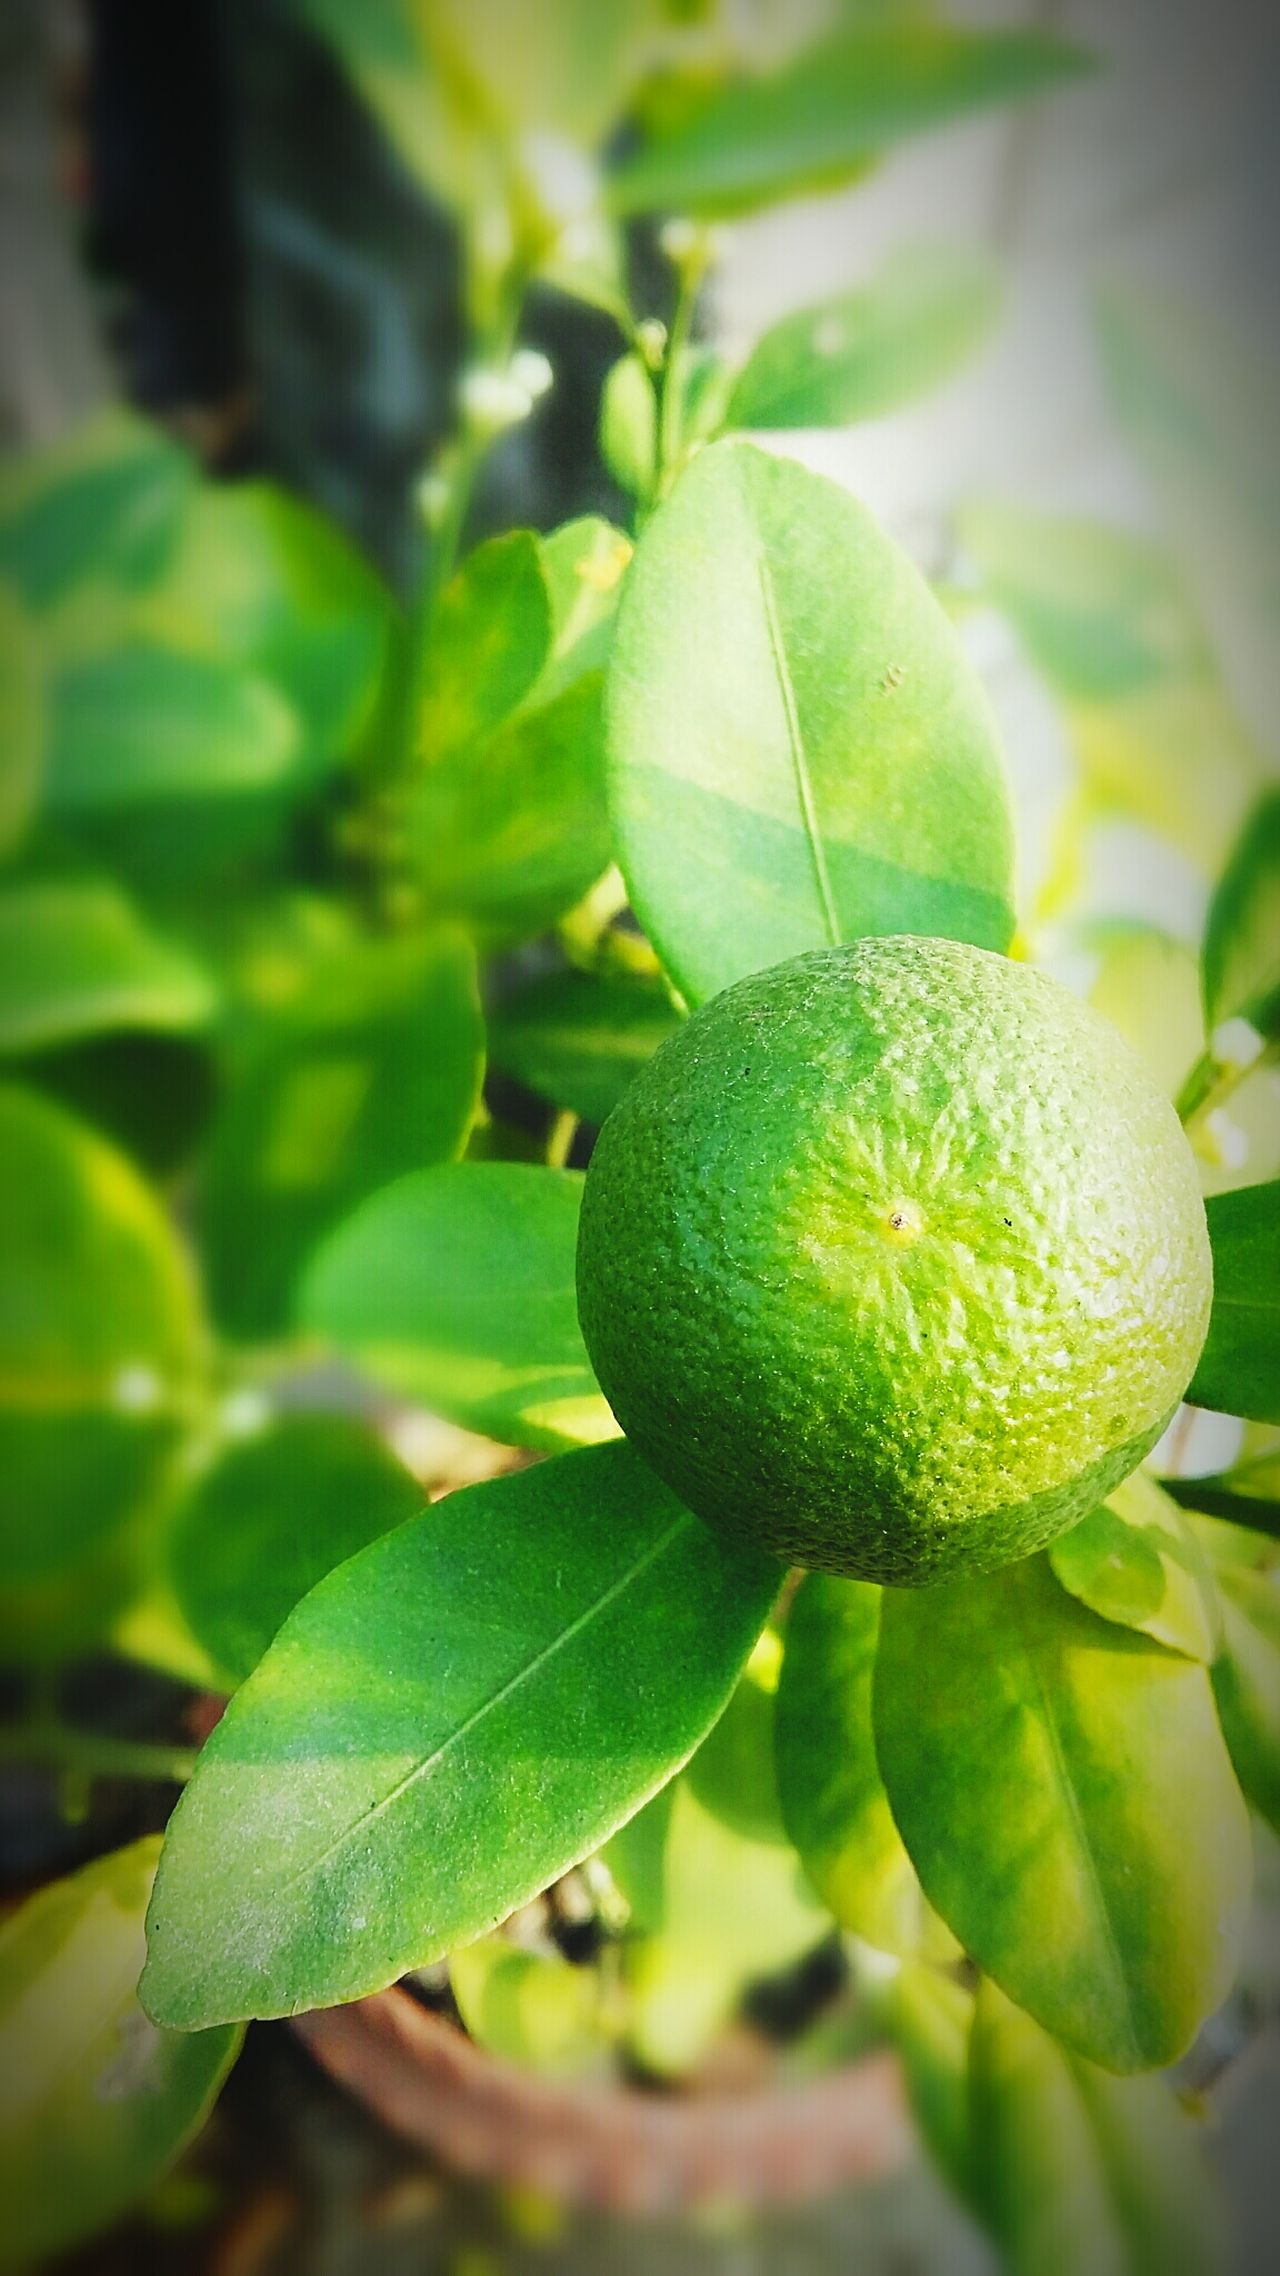 Lemon from my garden..... Taking Photos Hello World Check This Out Eyeem GalleryFruit Fruits Lemon Sunrays Through The Leaves